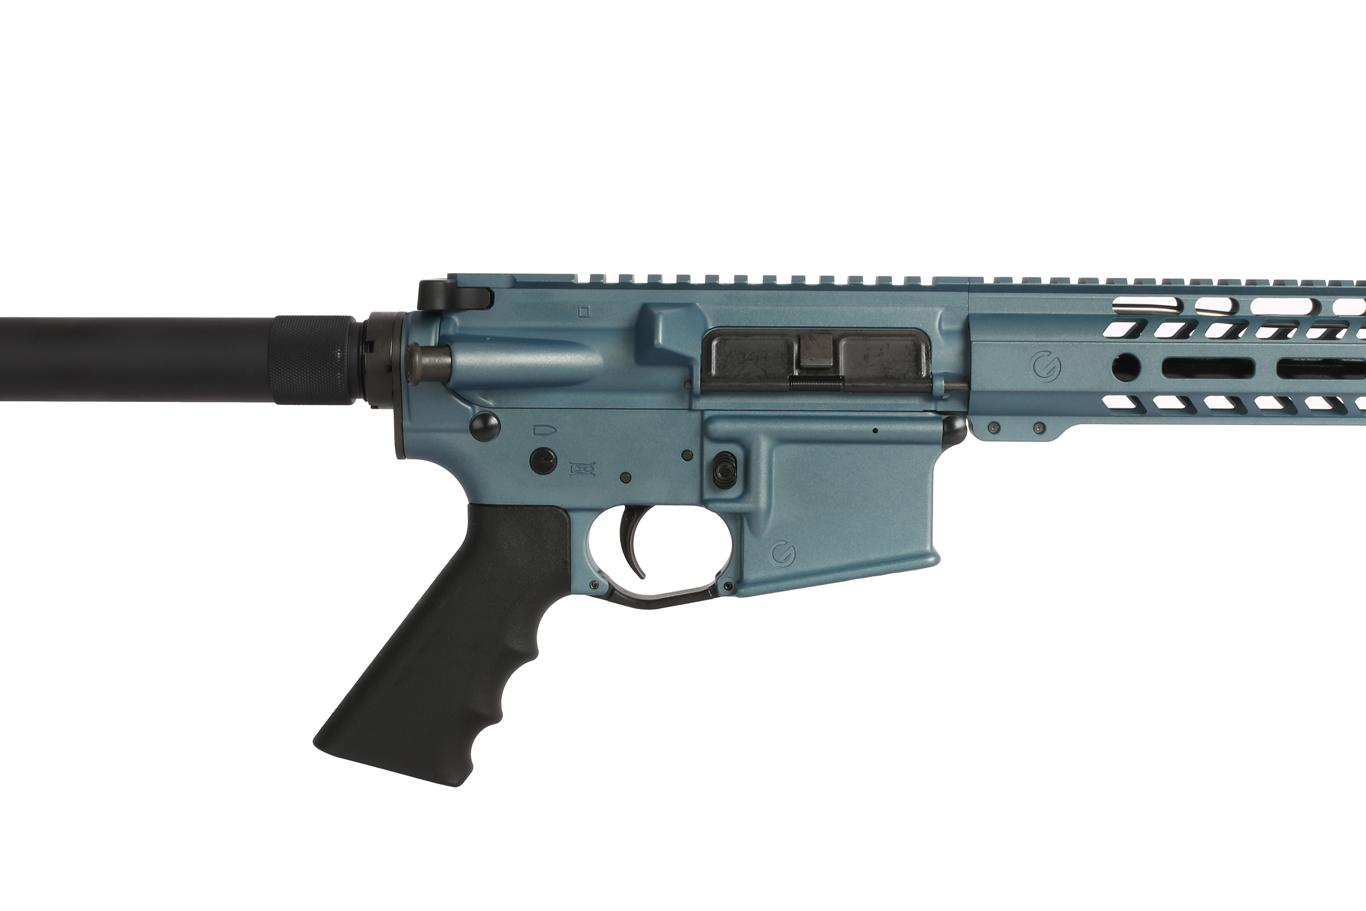 This ar15 pistol from Ghost Firearms has a blue titanium cerakote finish